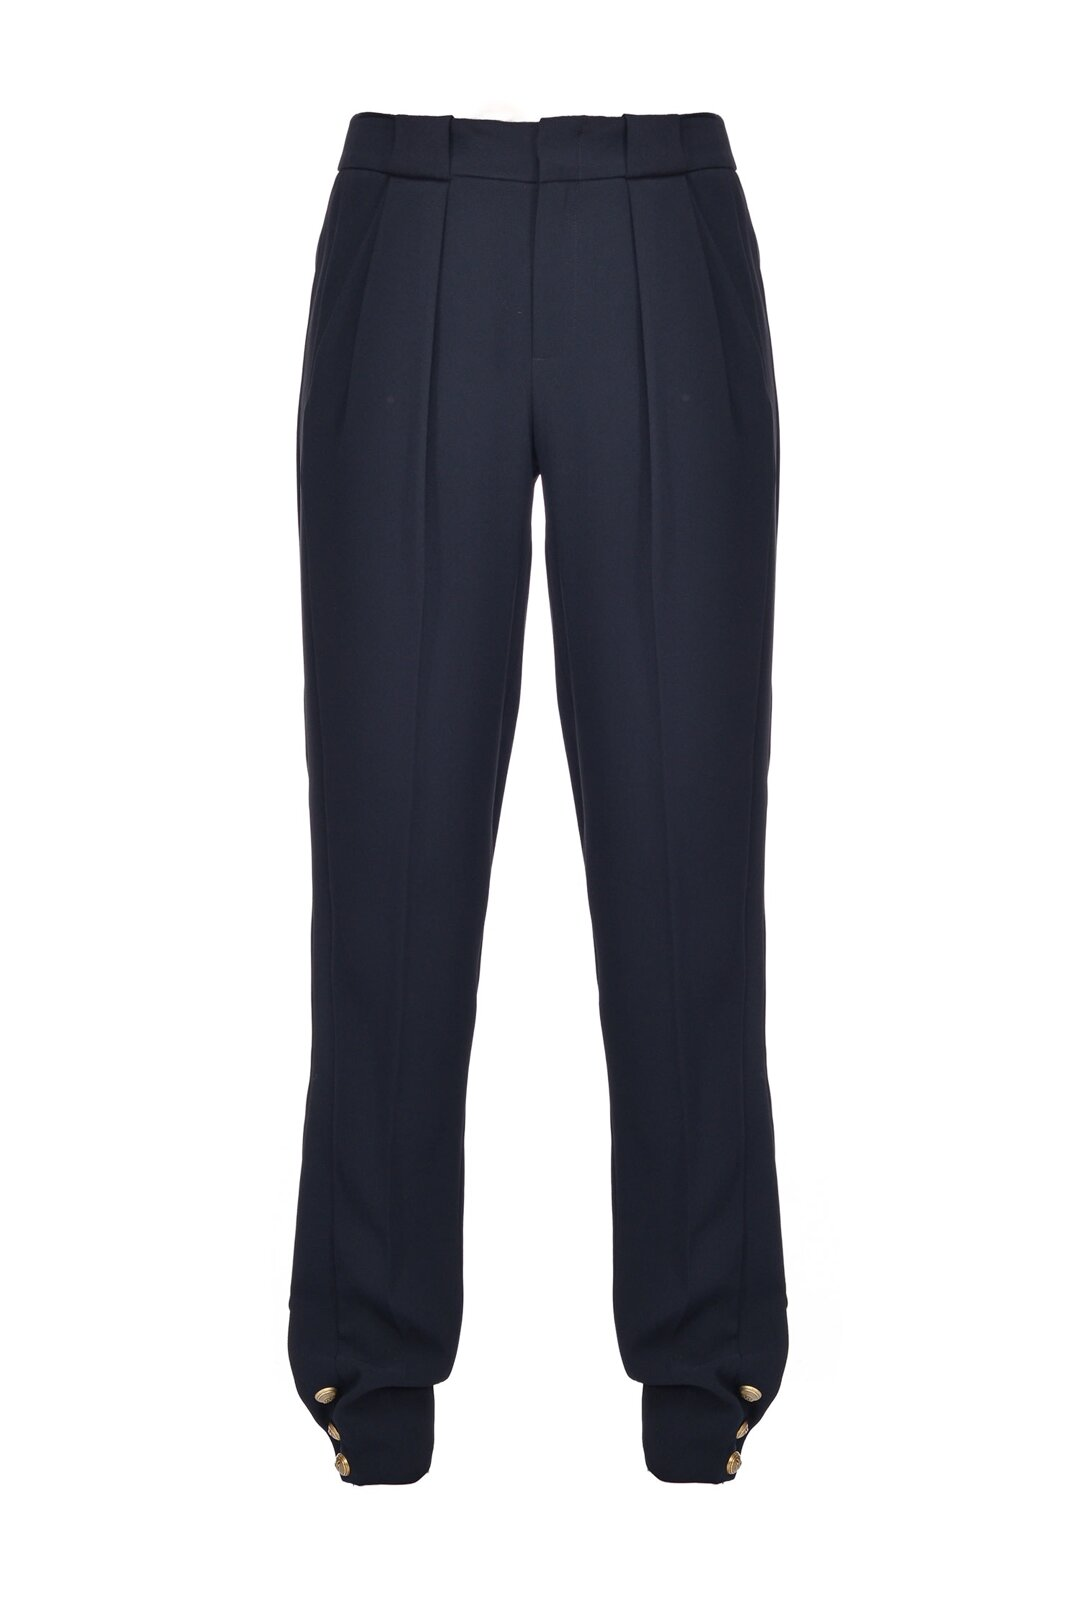 Trousers With Buttons At The Bottom - Pinko